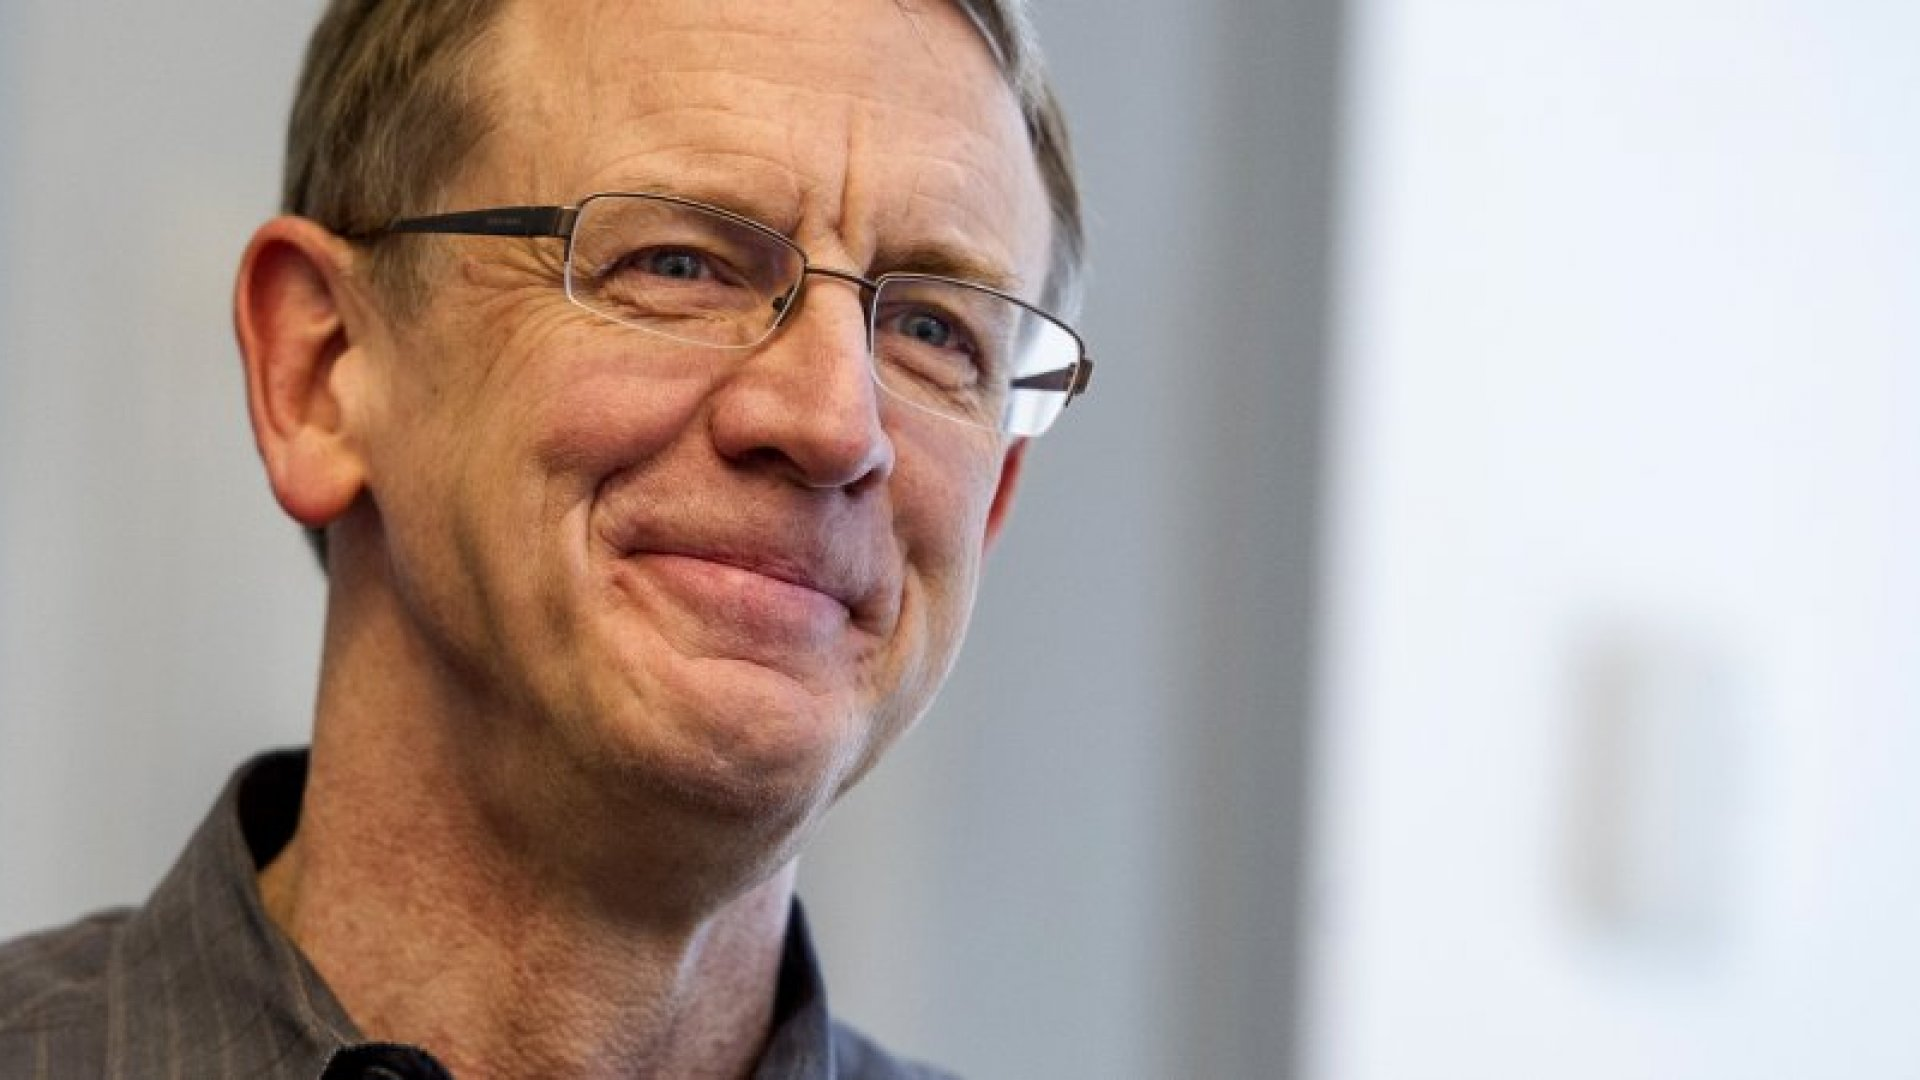 John Doerr on How to Beat The Odds and Get a Meeting With His Firm